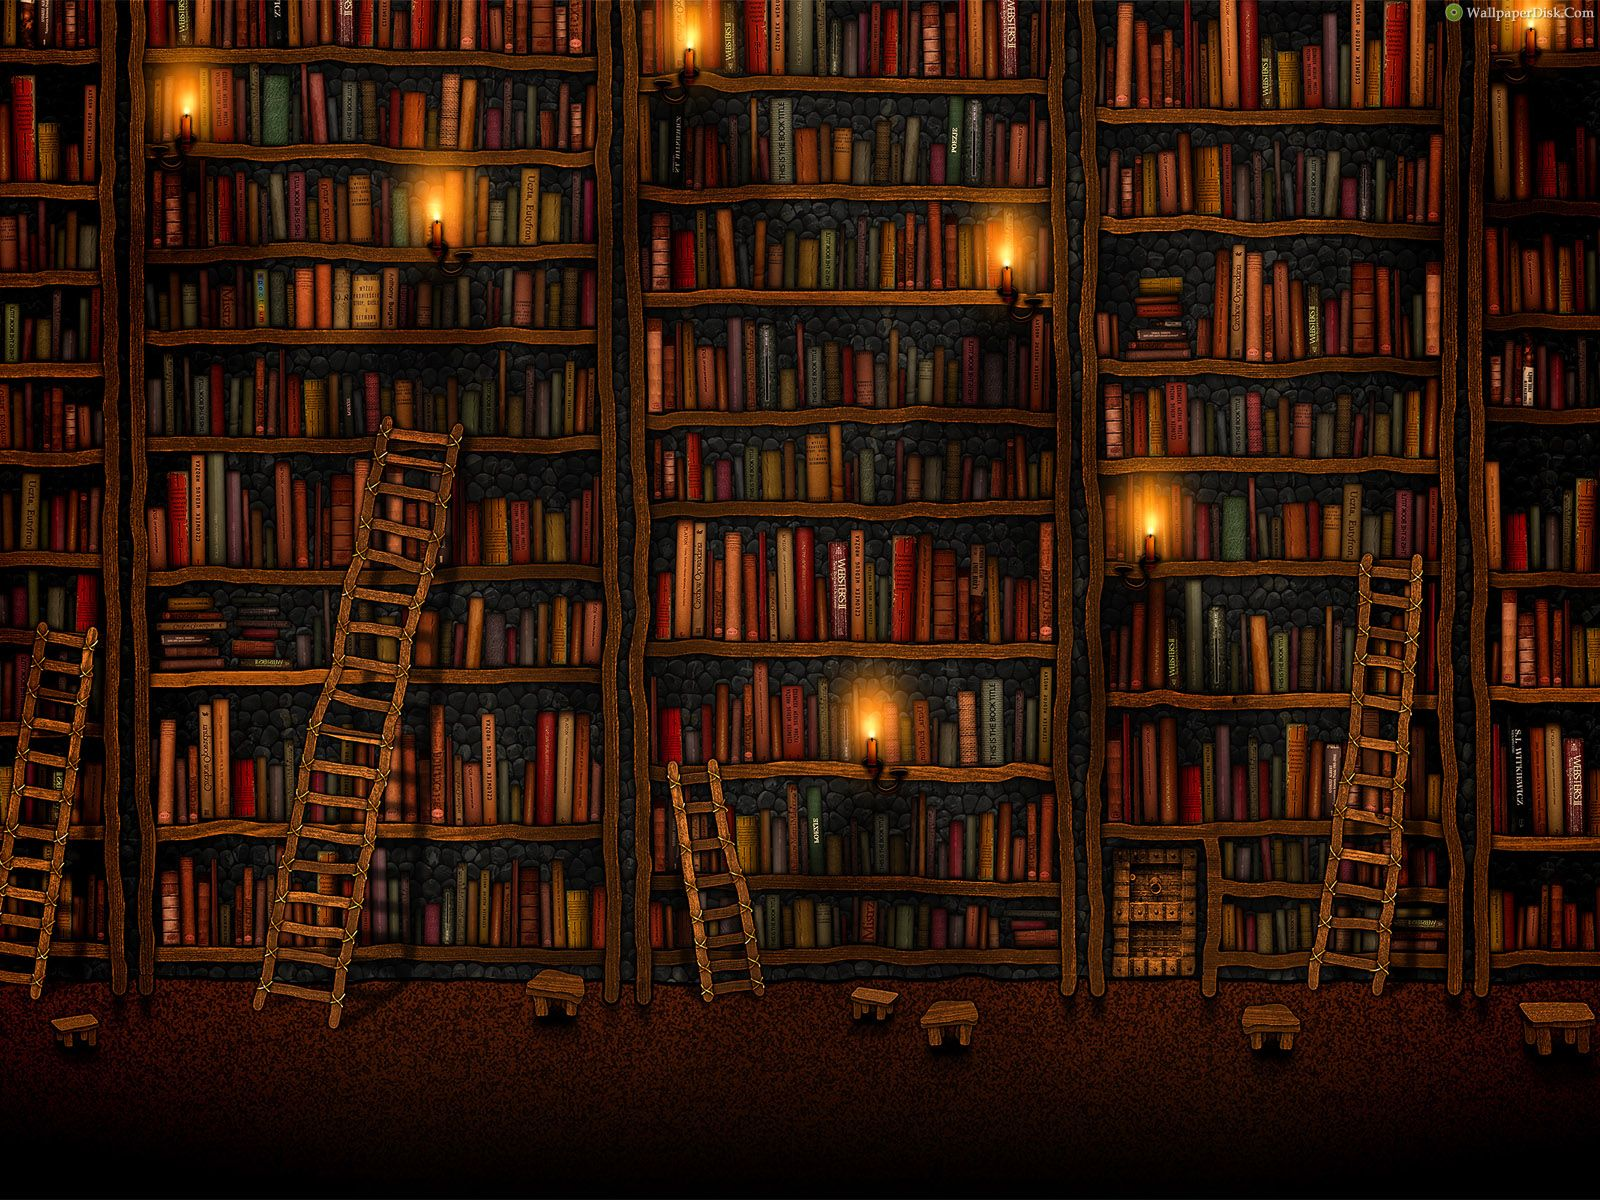 Best book library desktop wallpapers background collection 1600x1200